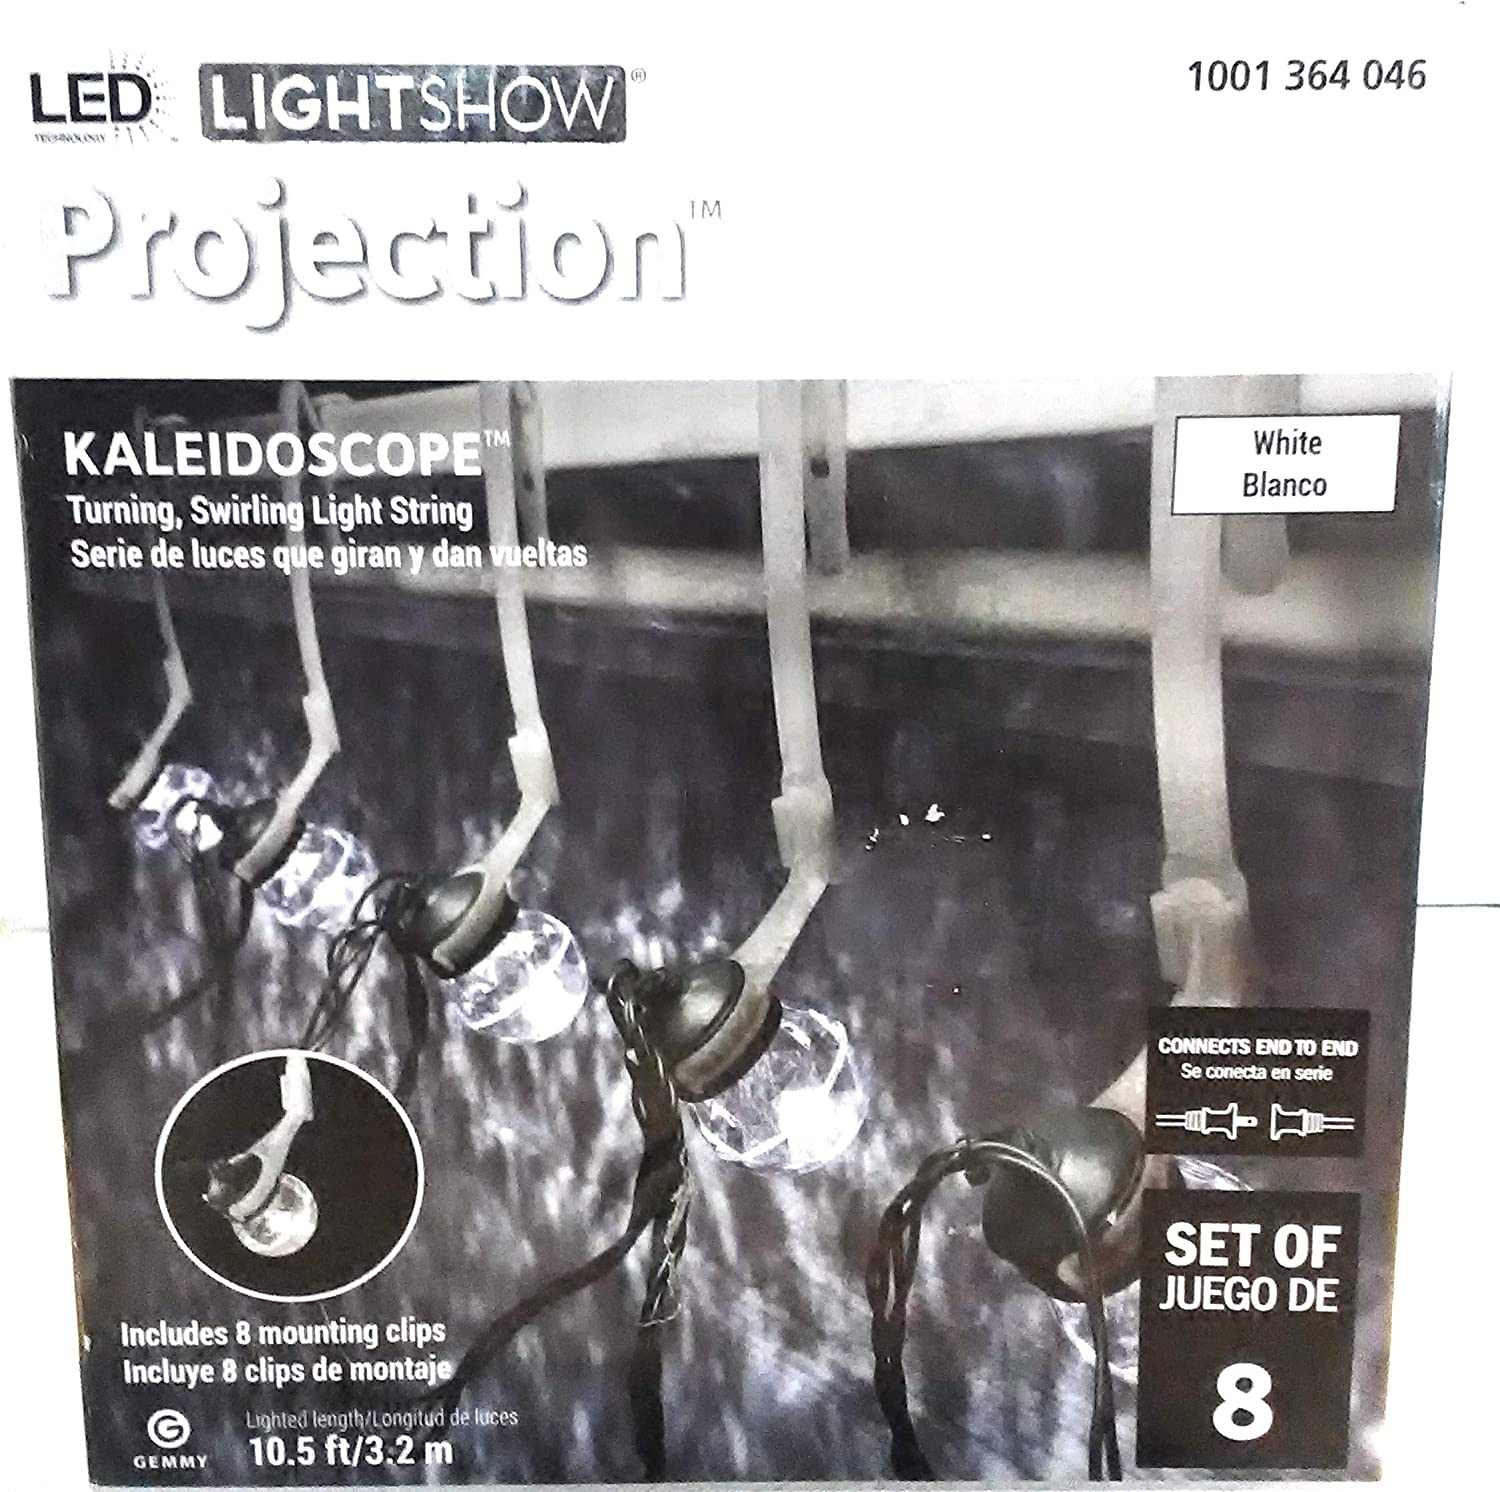 Gemmy Lightshow 8 Kaleidoscope Projection String Light Bulbs White LEDs w//Clips